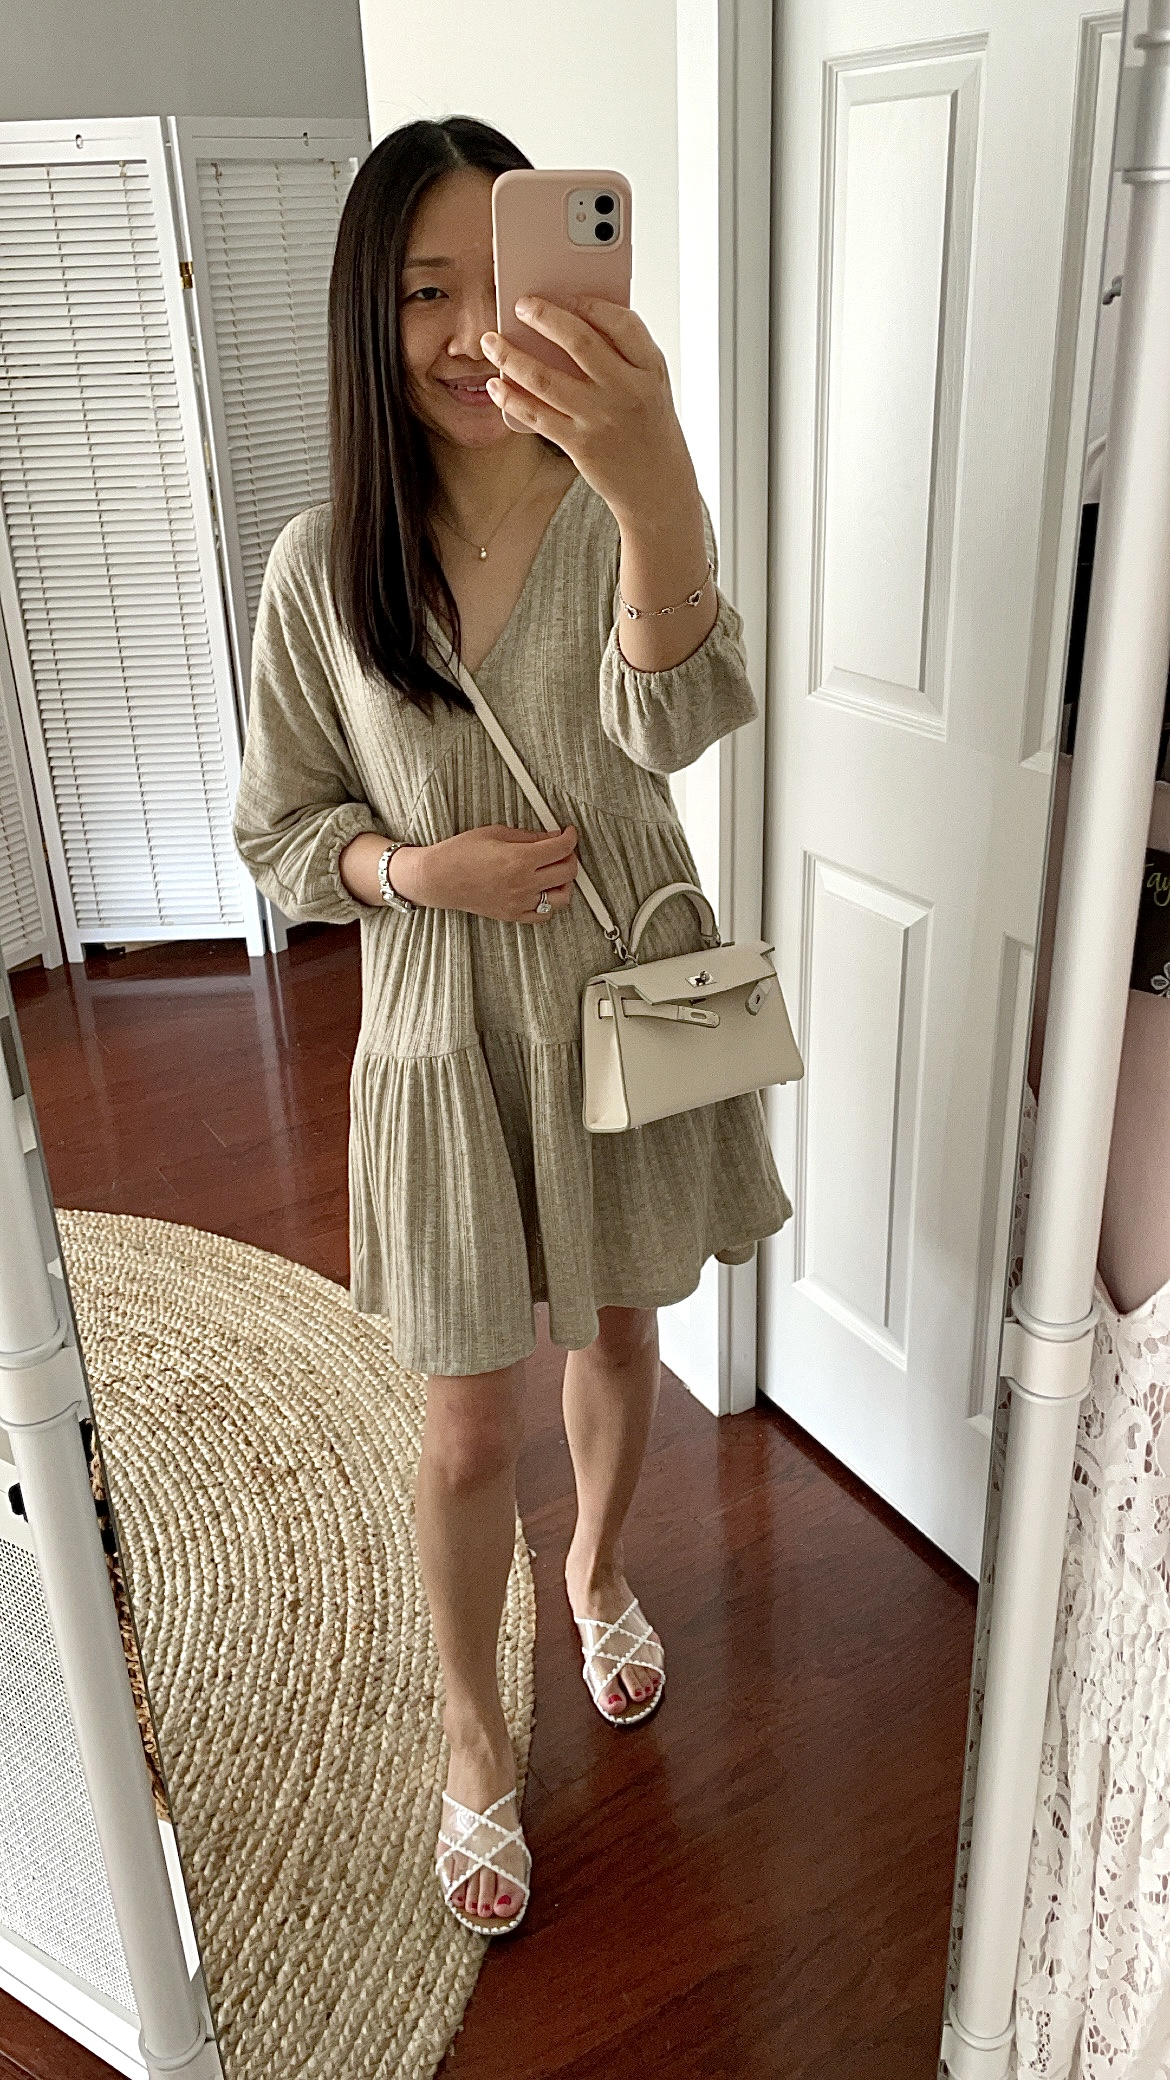 LUSH Textured Knit Baby Doll Dress, size S